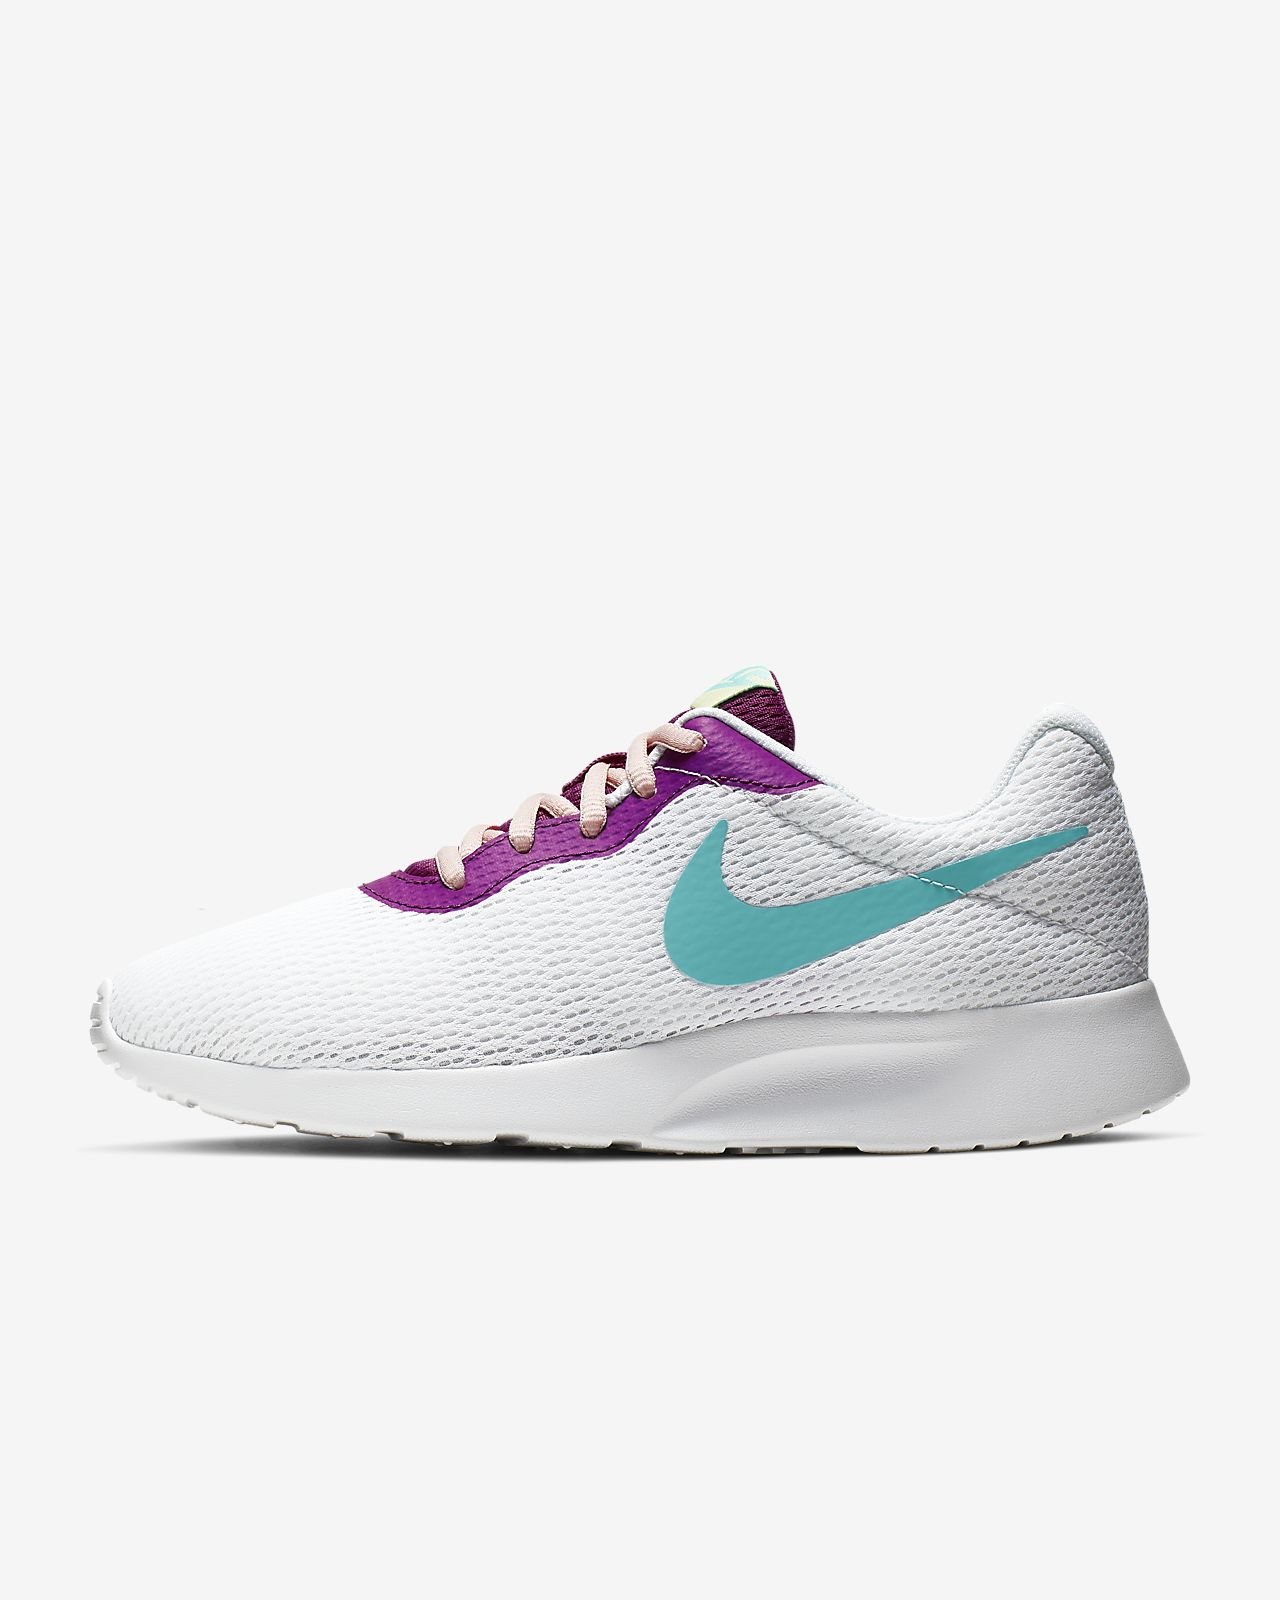 94555a3f4 Low Resolution Nike Tanjun Women's Shoe Nike Tanjun Women's Shoe